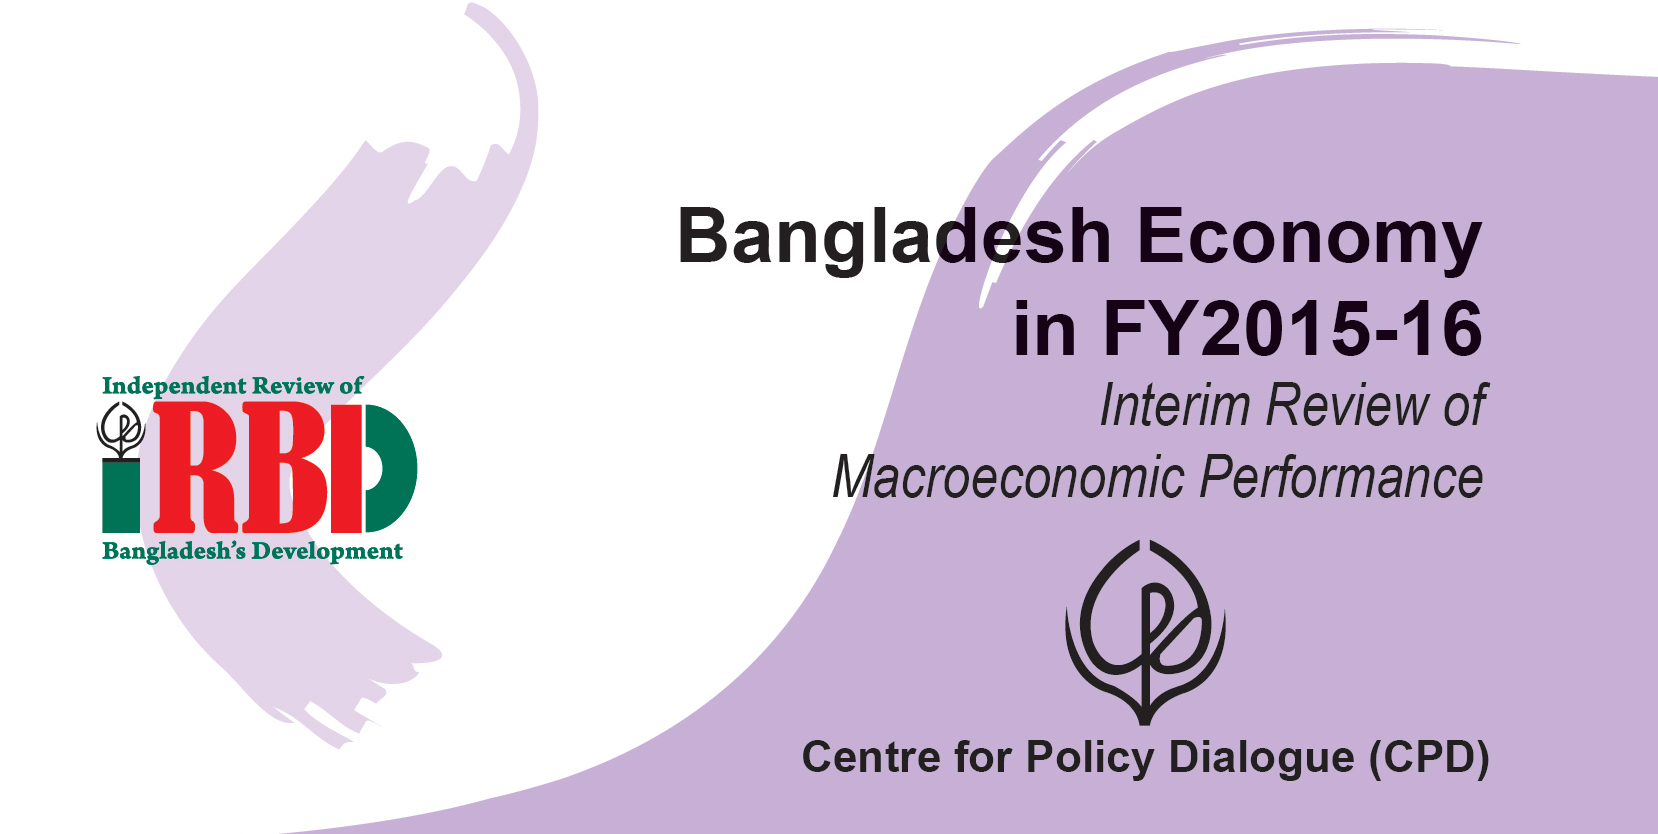 Bangladesh-Economy-in-FY2015-16-Third-Interim-Review-of-Macroeconomic-Performance01